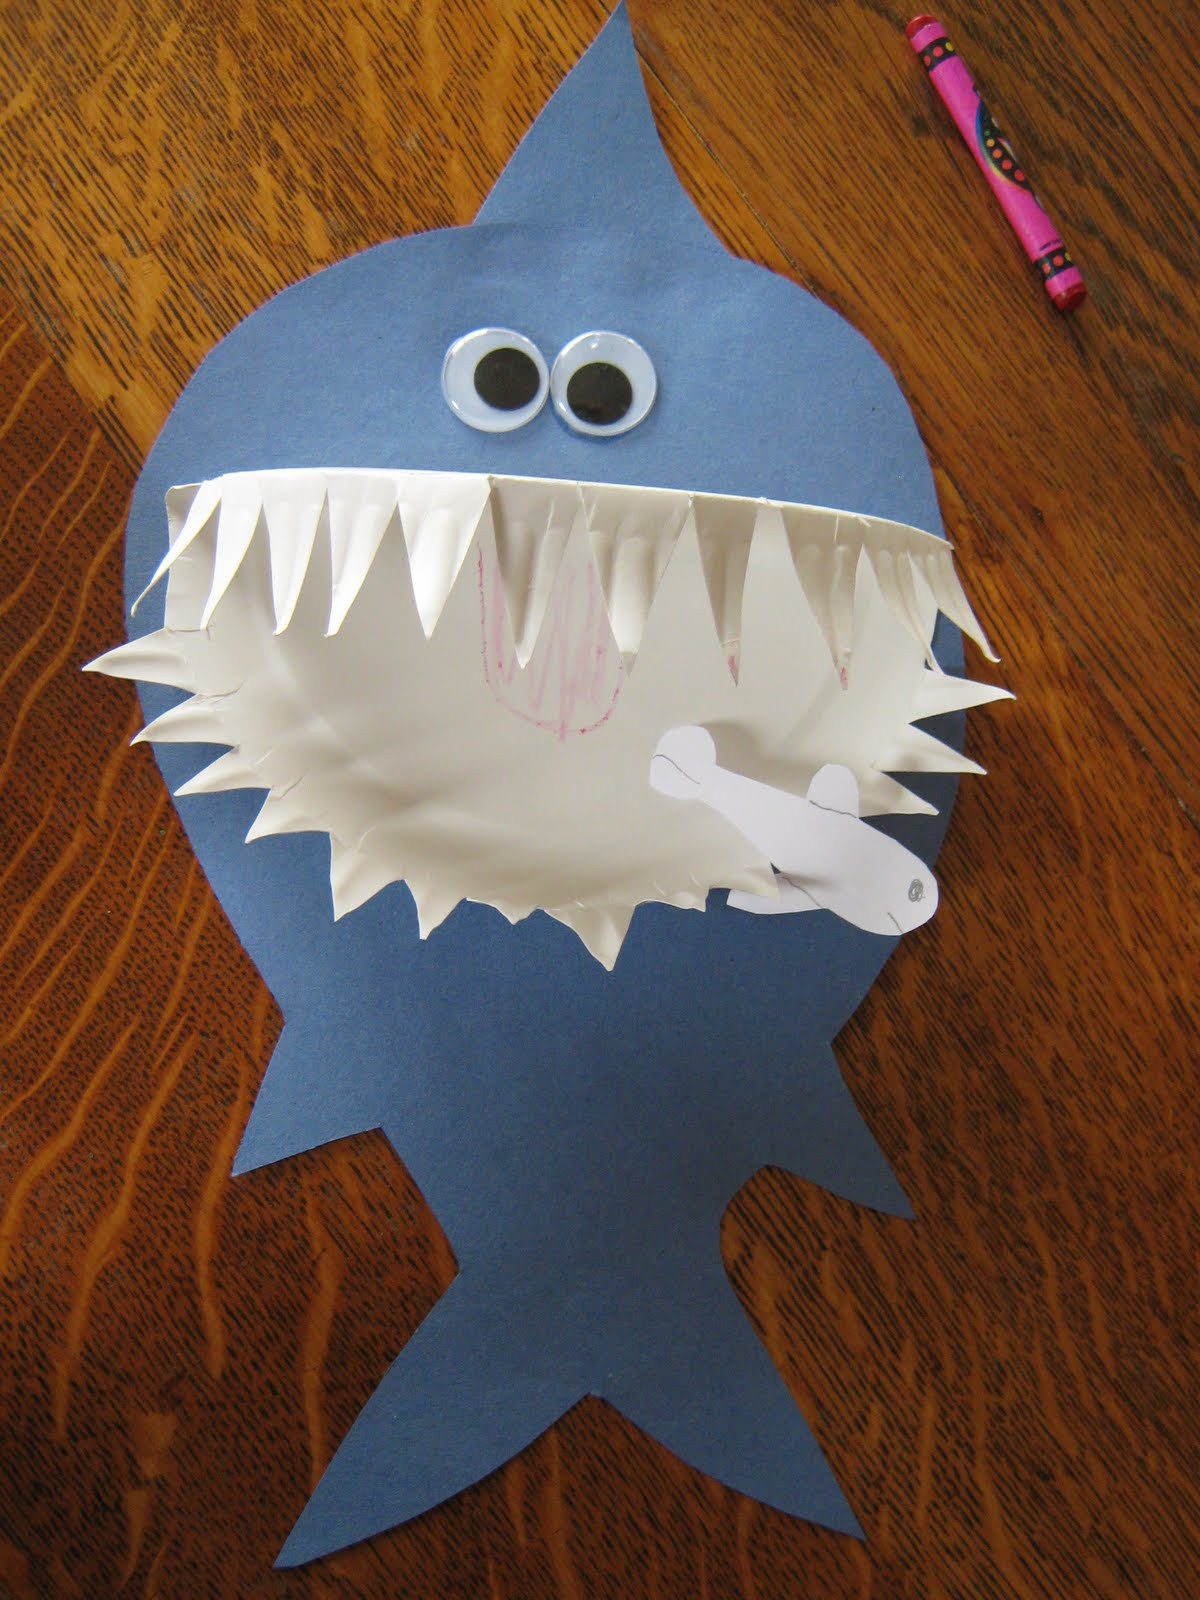 Preschool Arts And Craft  Paper plate crafts for kids A Z C R A F T